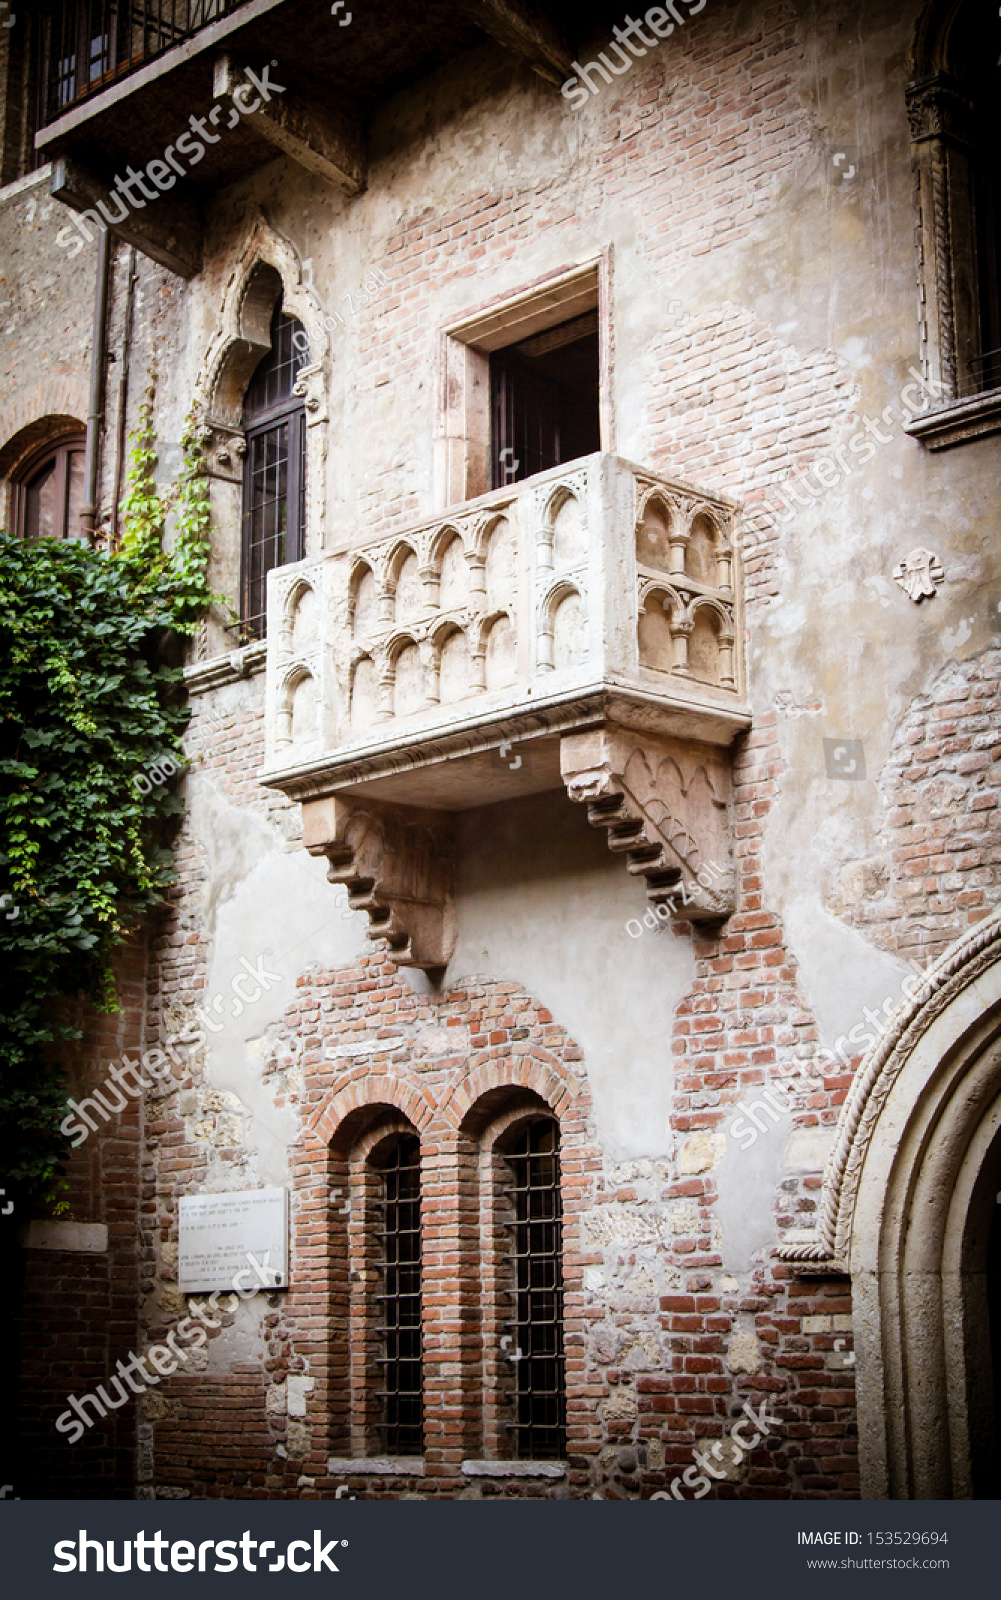 The famous julia balcony in verona italy stock photo for Famous balcony